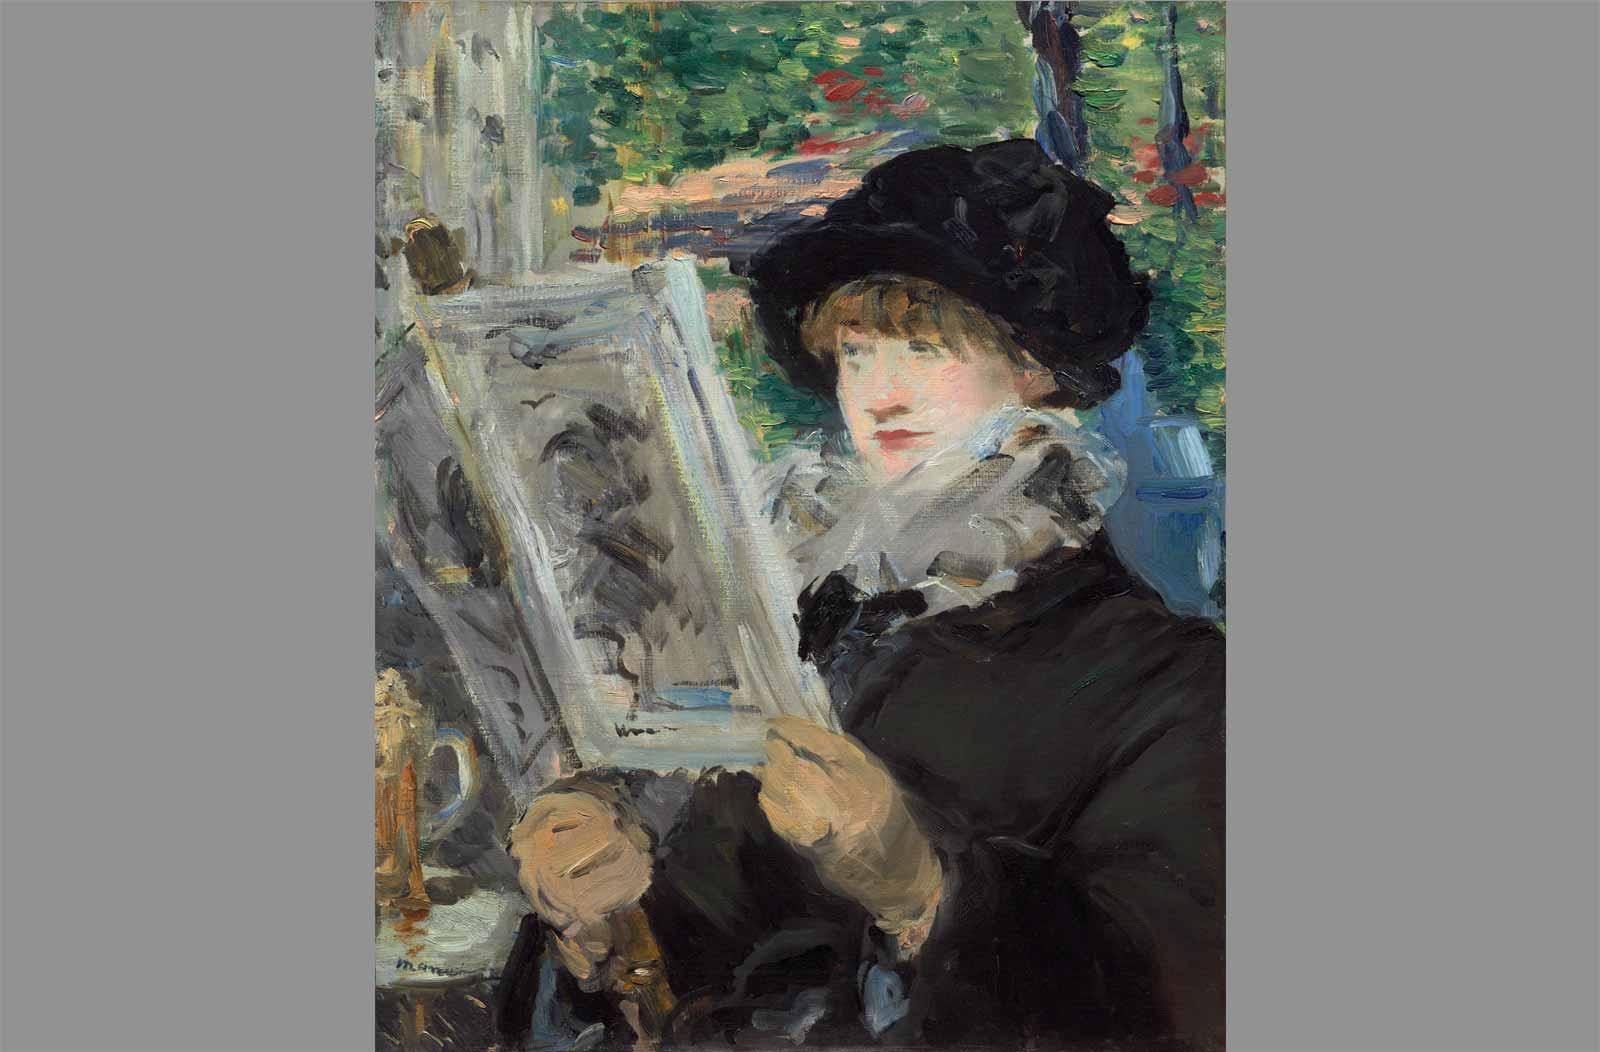 Édouard Manet. Woman Reading, 1880 or 81.